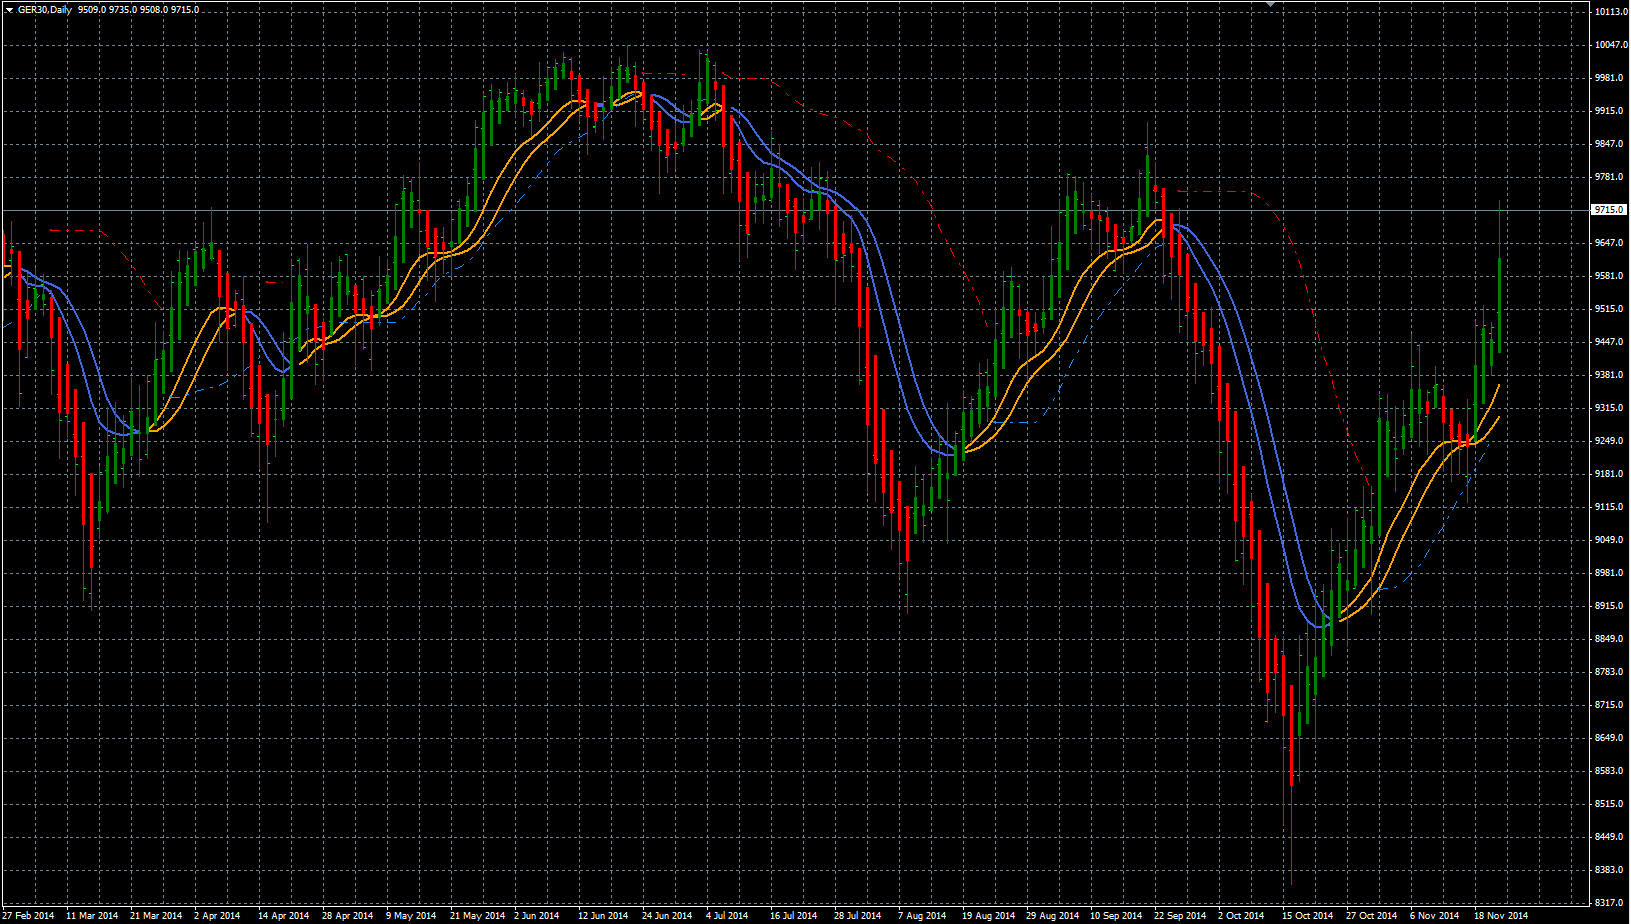 DAX daily S-Filter